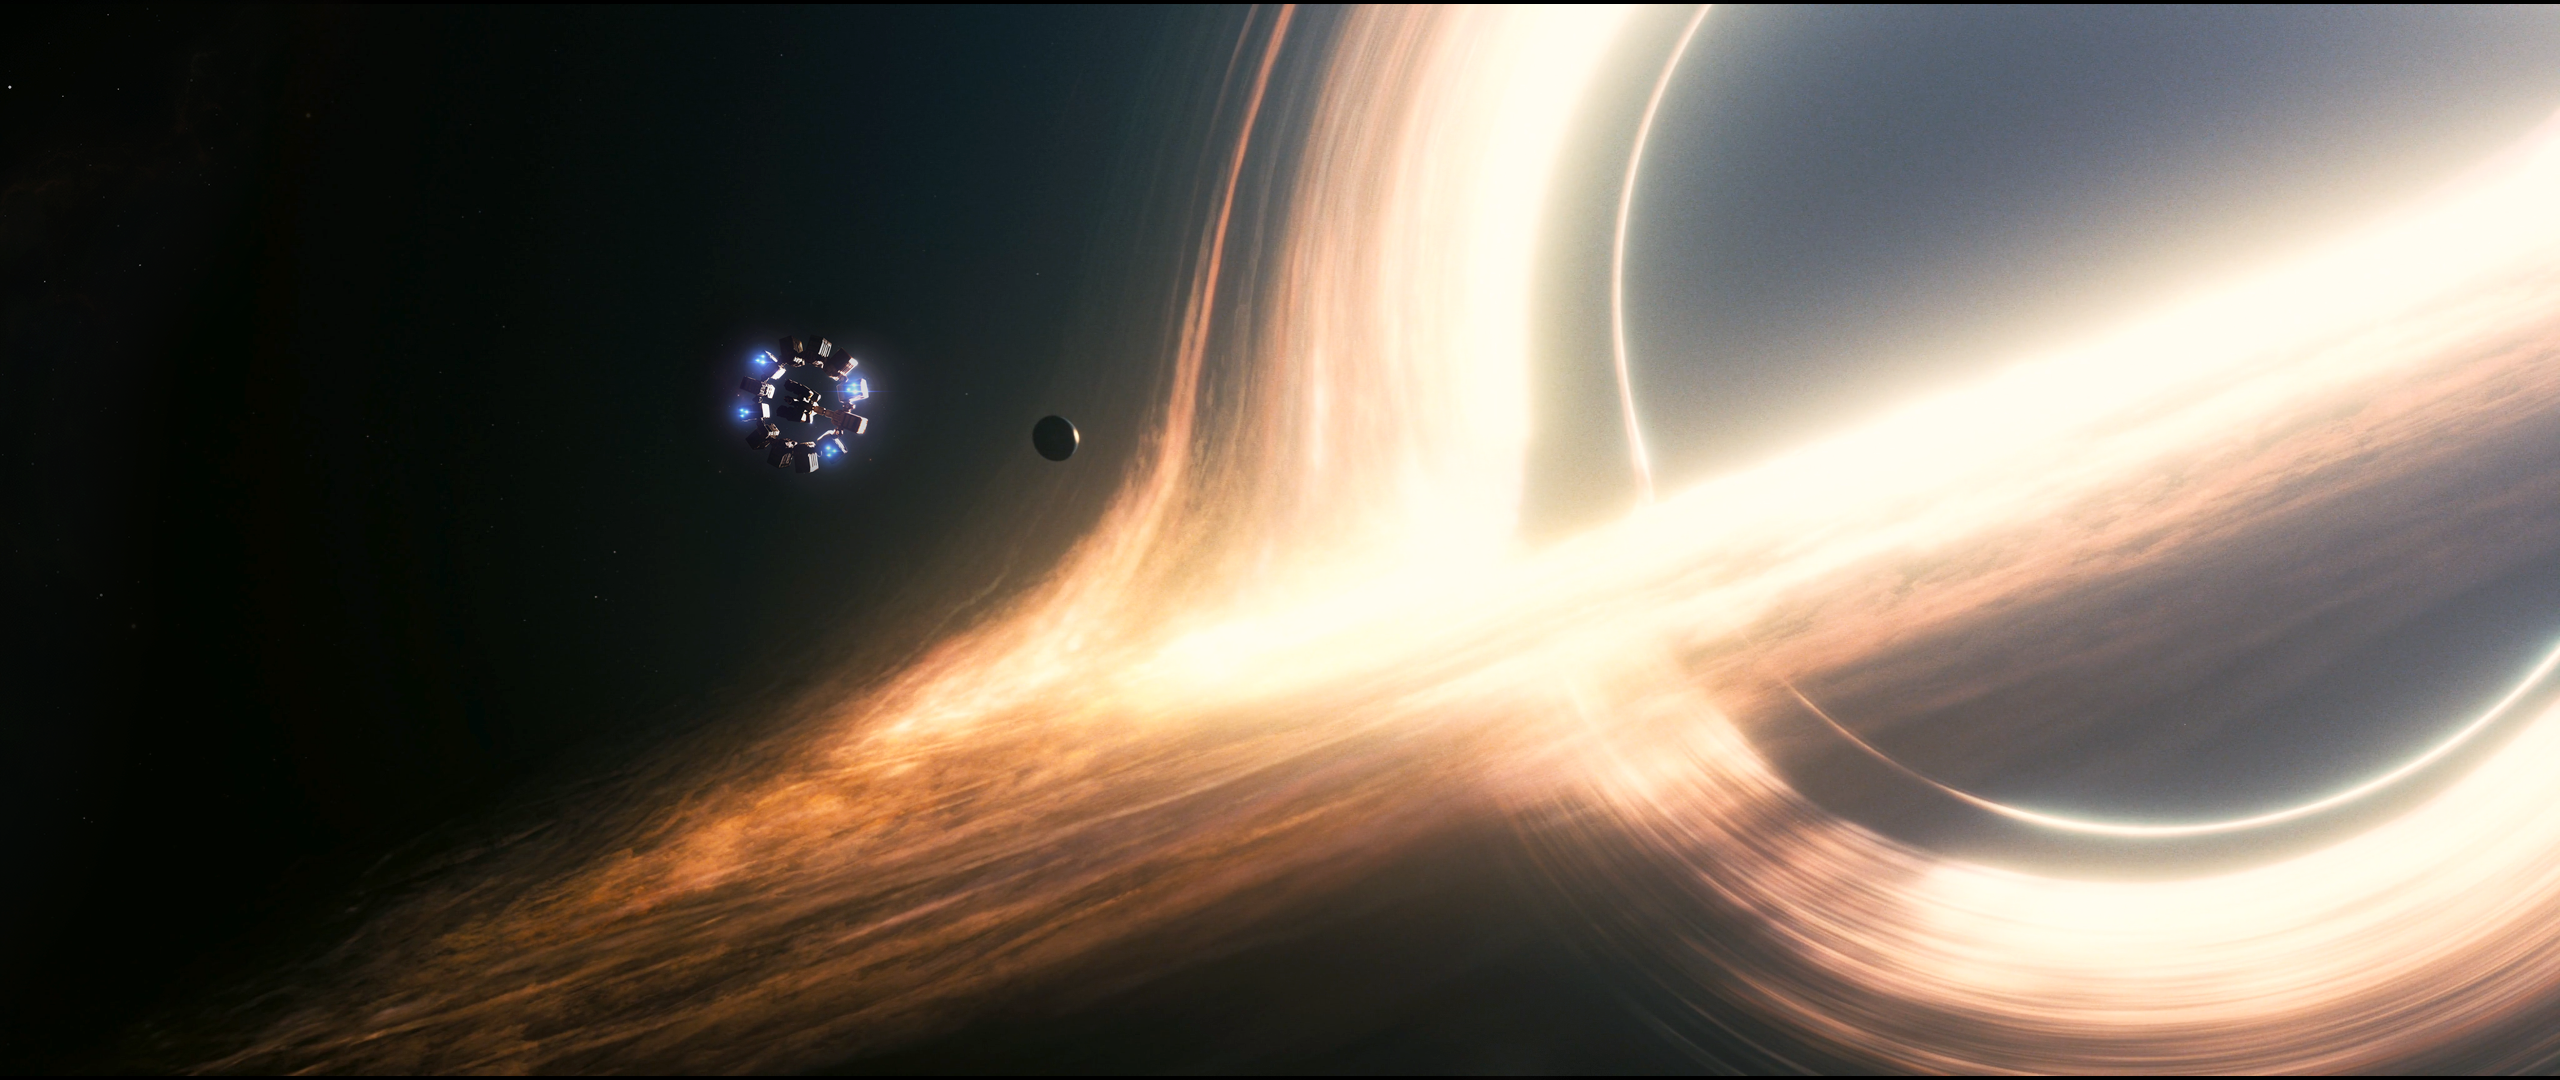 2560x1080 - Black Hole Wallpapers 6